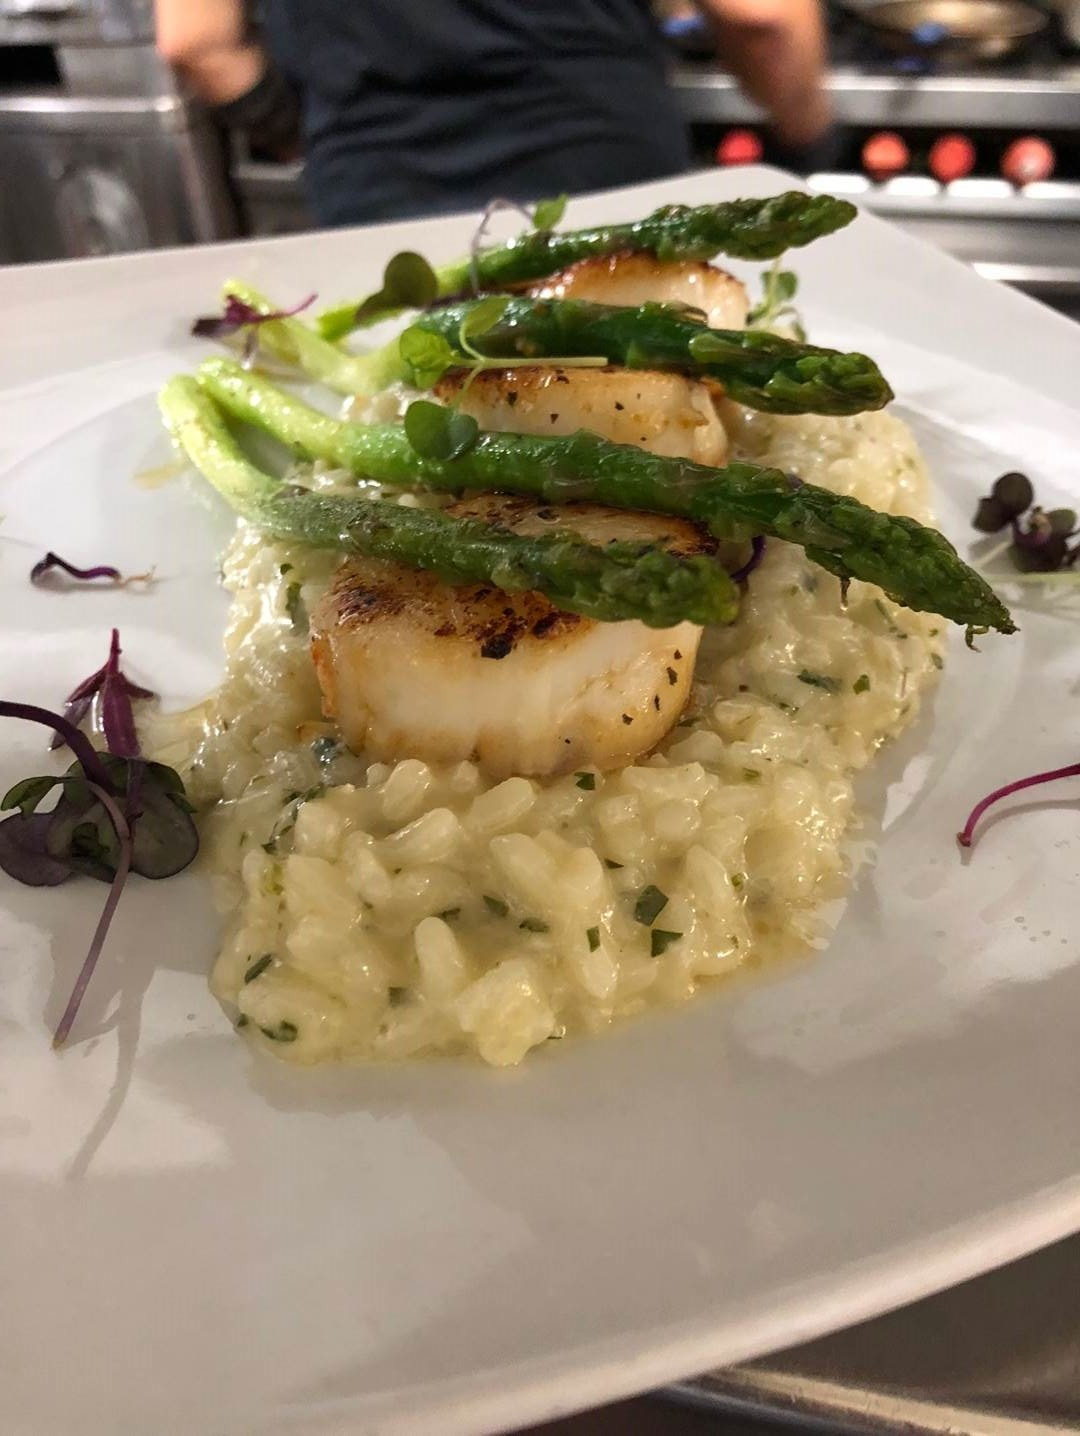 Scallops over risotto with asparagus